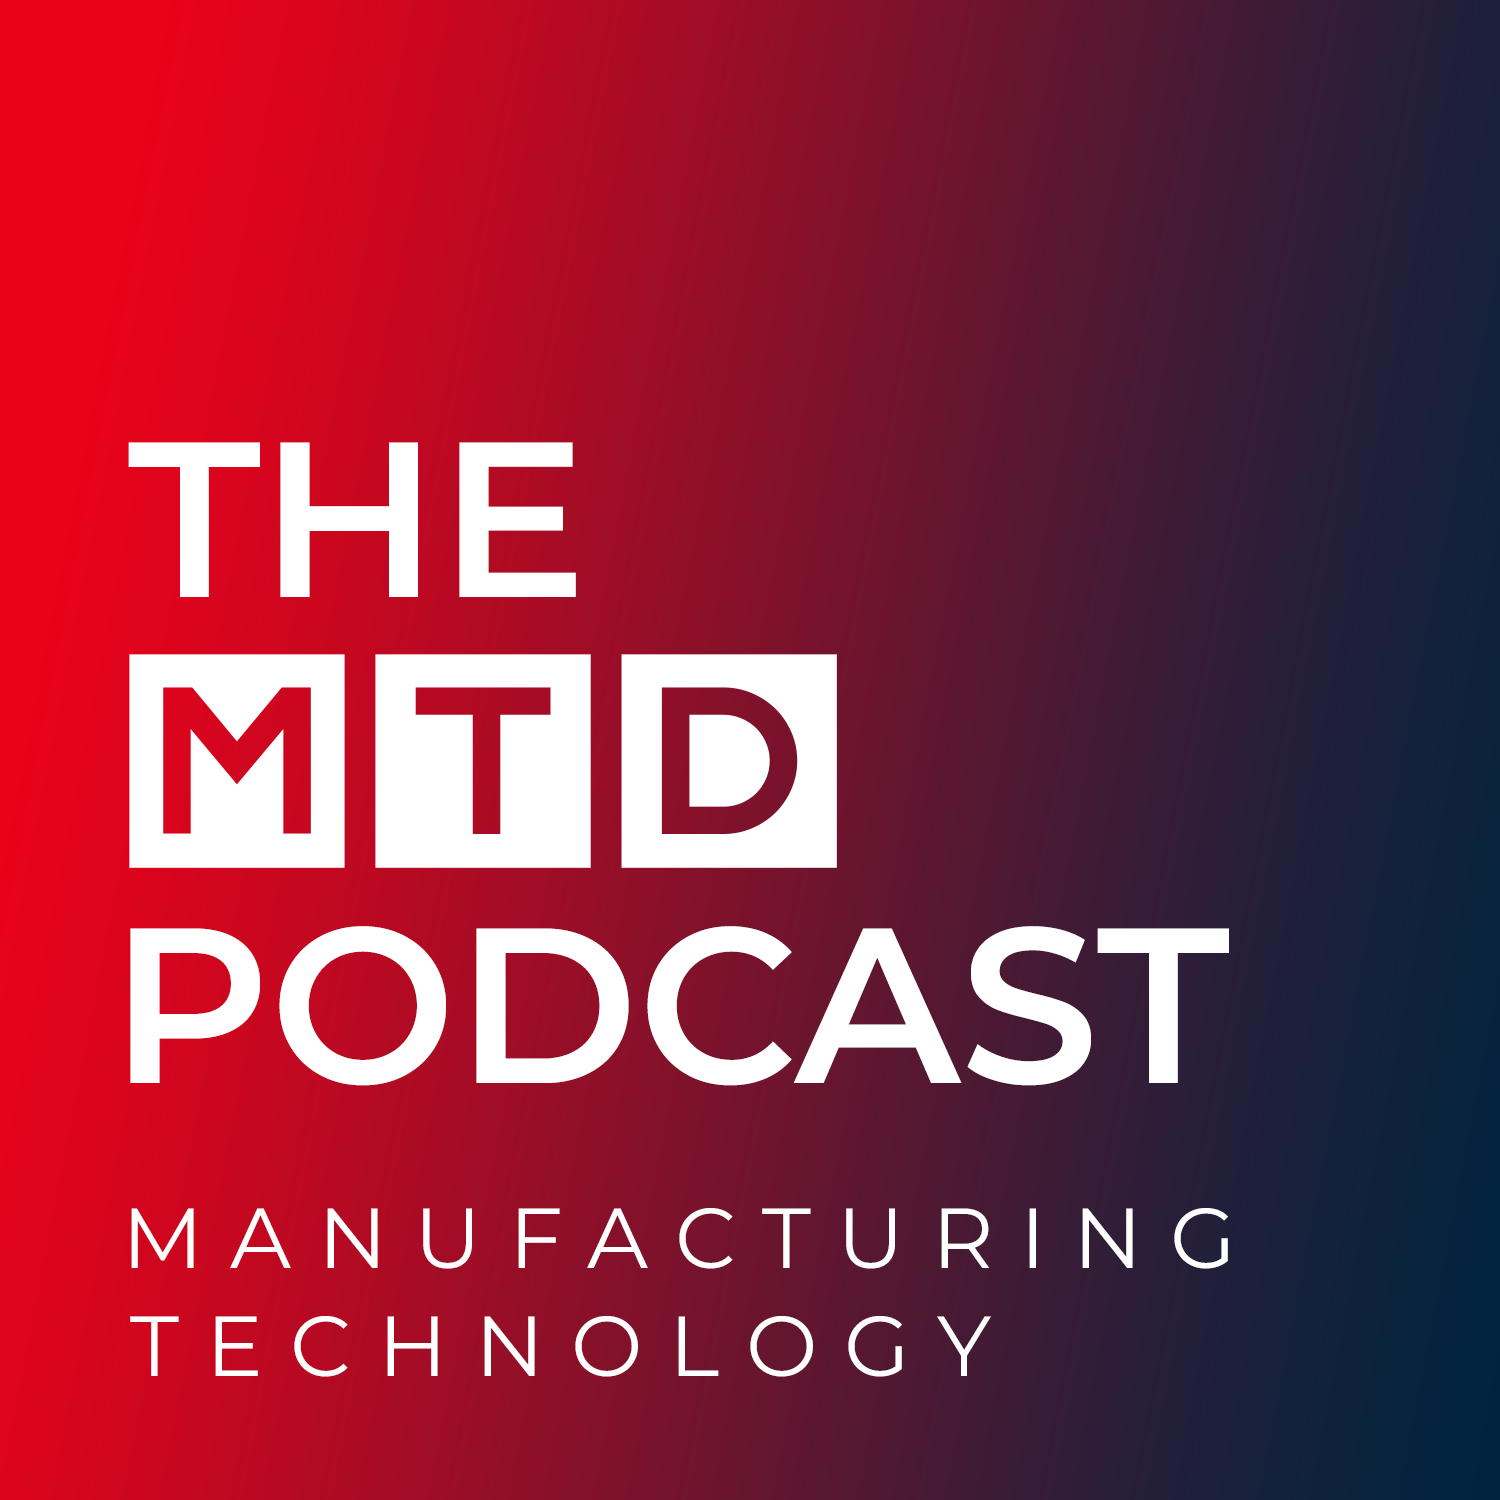 Buy a DMG MORI machine and not pay a penny for up to 6 months | MTD Podcast Se2 Ep45